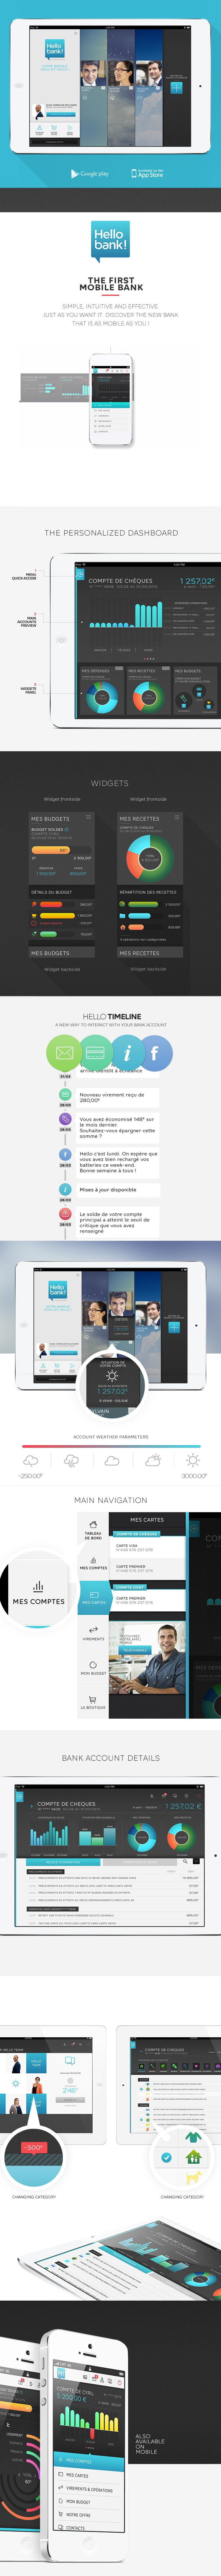 HELLO BANK! IPAD APP Art Direction, Interaction Design, UI/UX